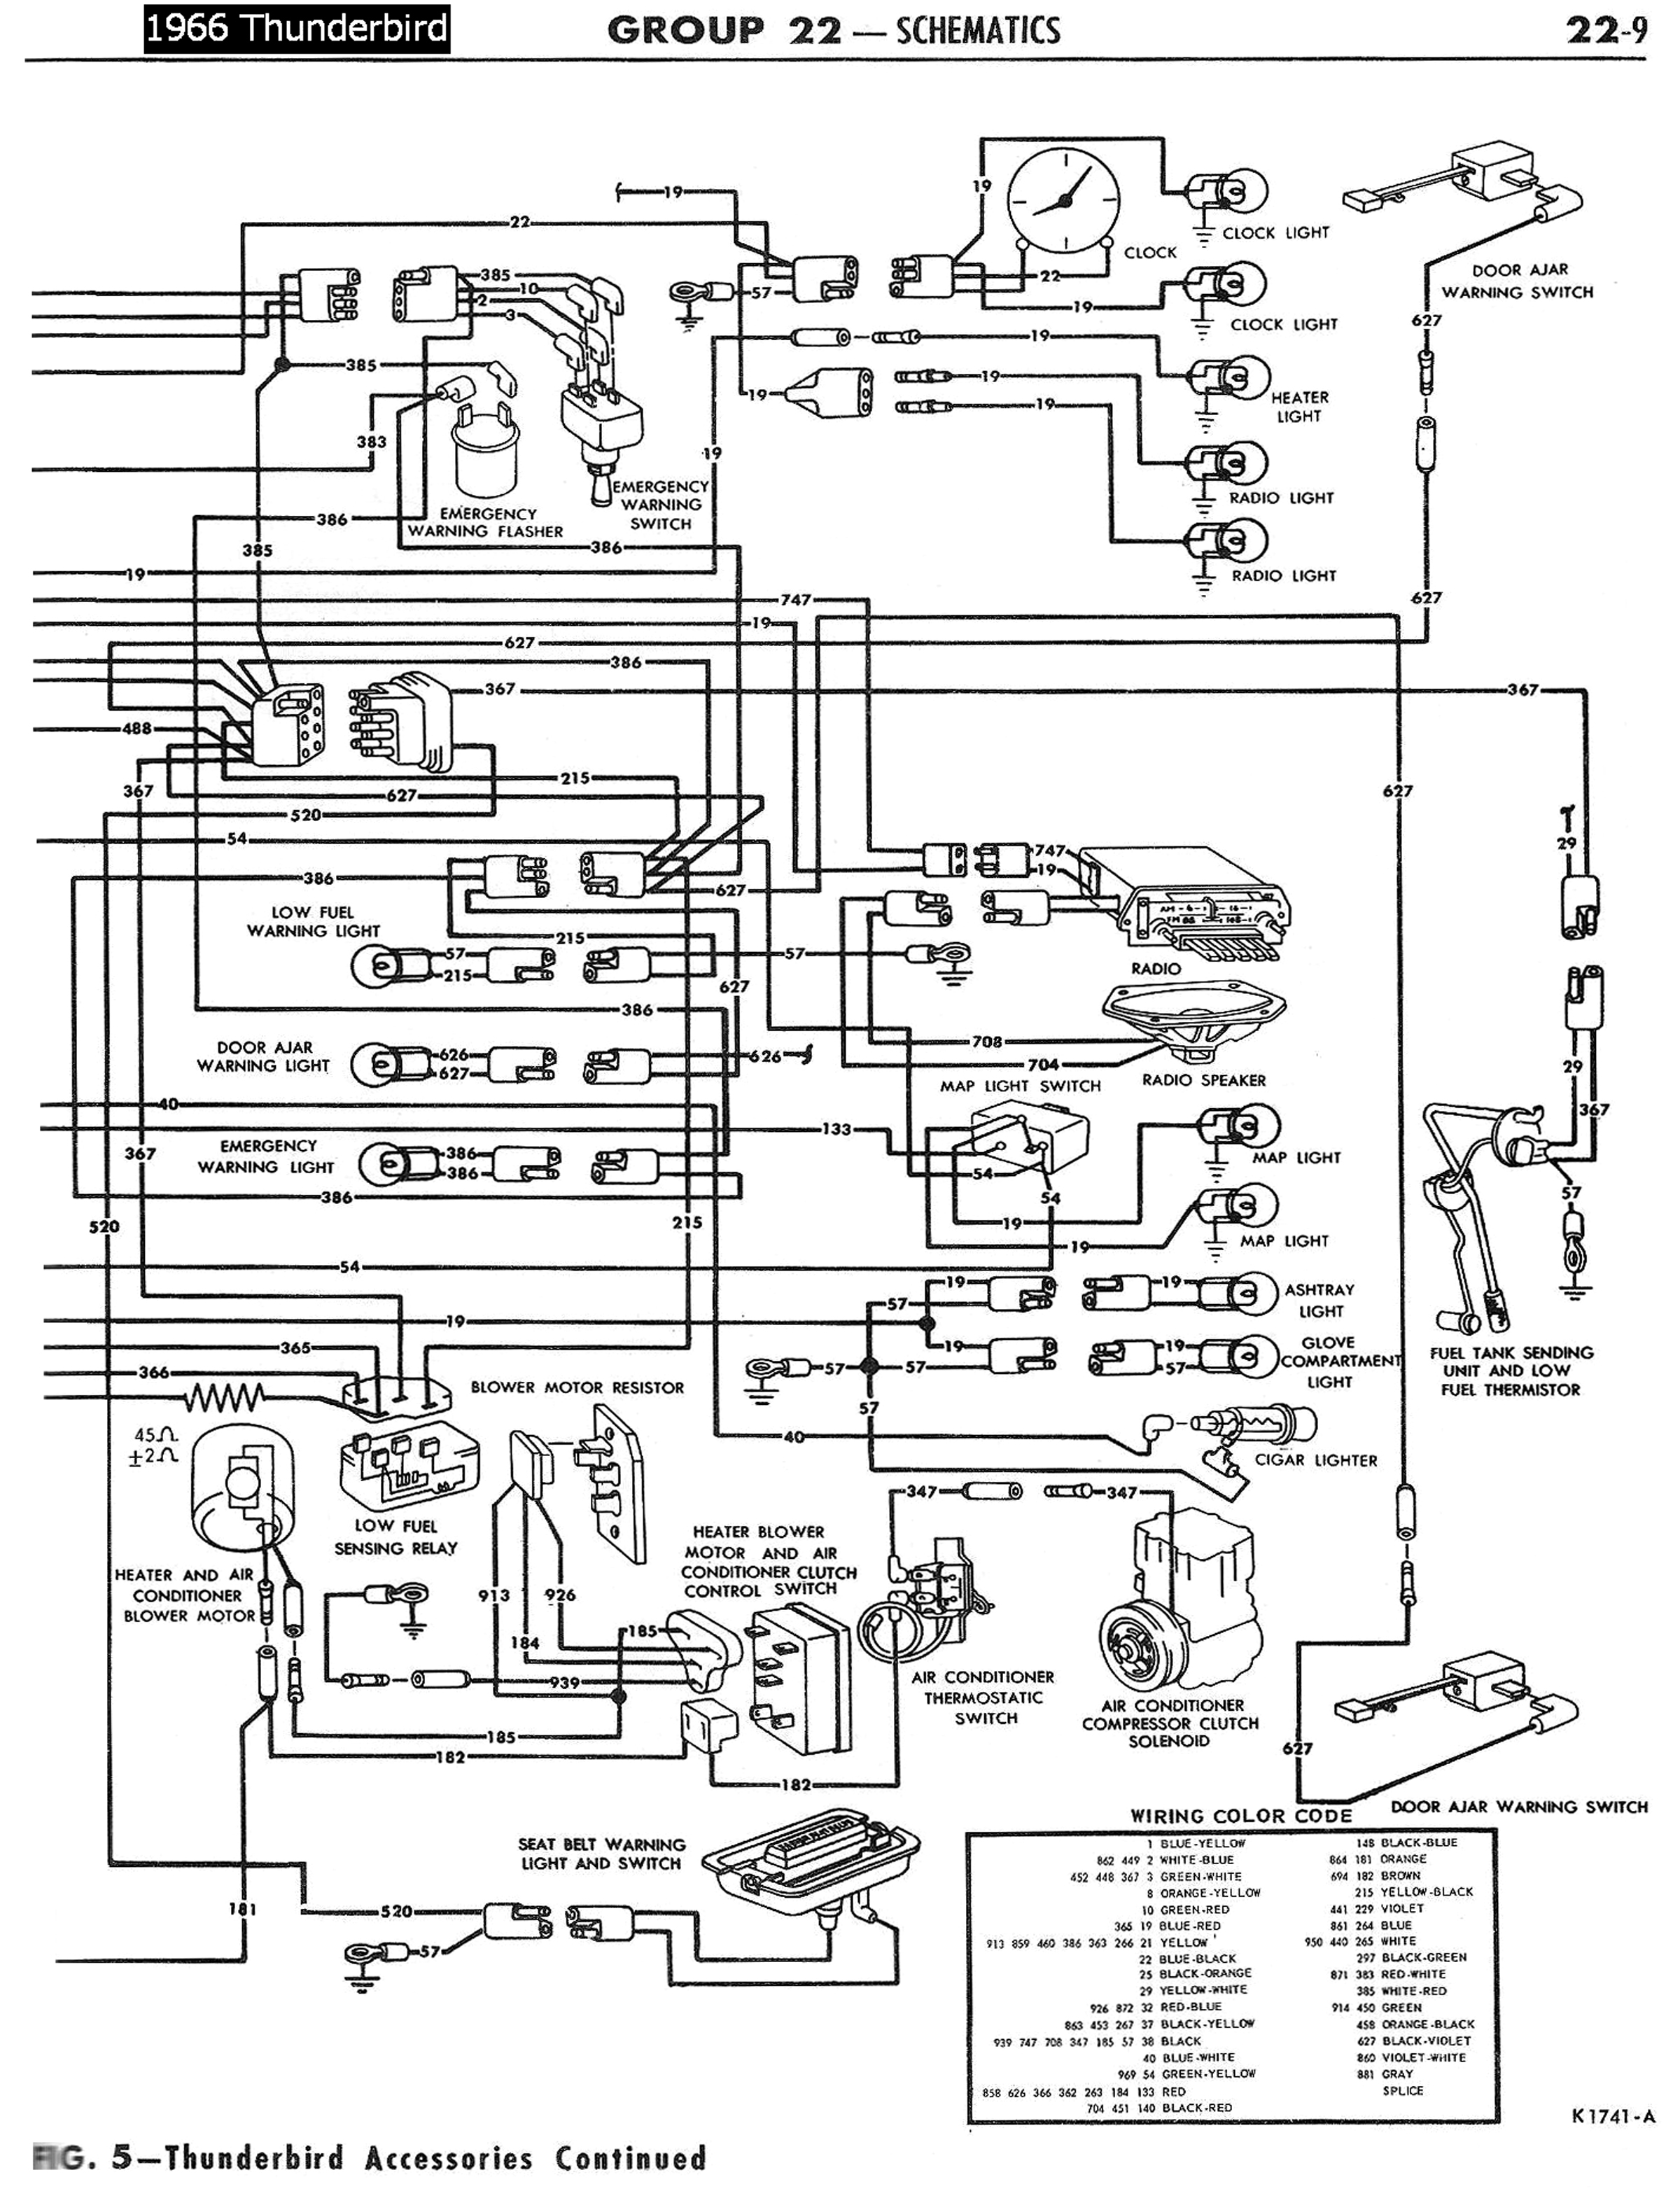 1994 ford thunderbird wiring schematic wiring diagram fuse box u2022 rh friendsoffido co